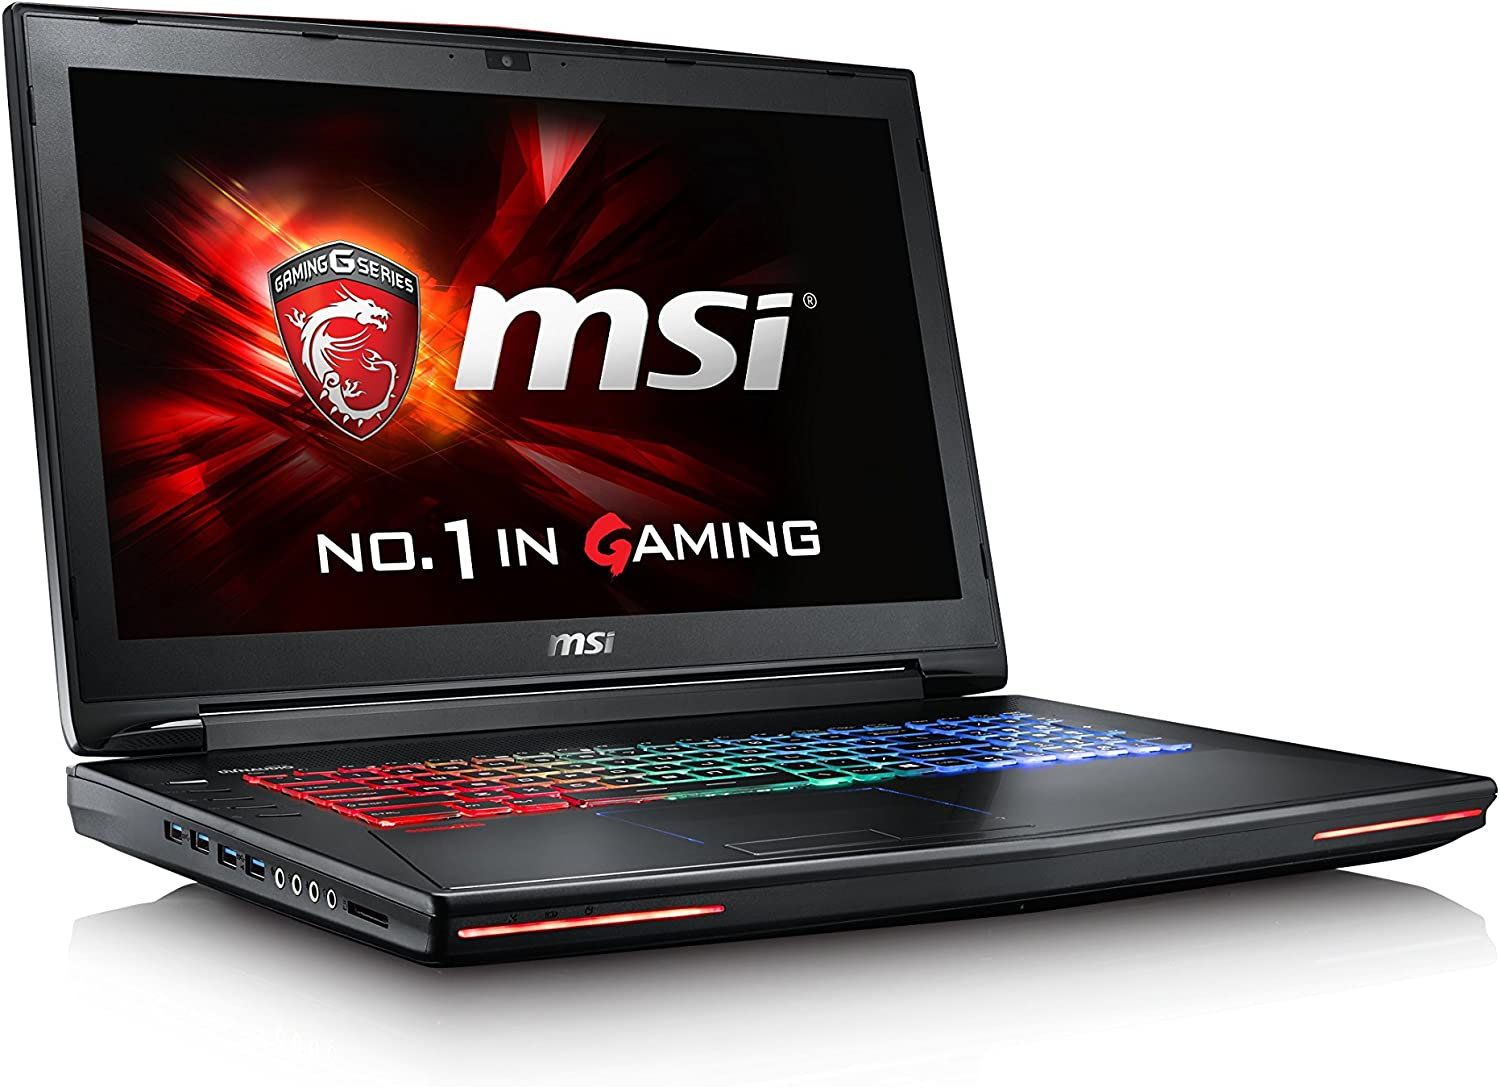 "MSI GT72S Dominator G-037 17.3"" GAMING LAPTOP NOTEBOOK GTX970M i7-6820HK 16GB 128SSD+1TB G-SYNC THUNDERBOLT"